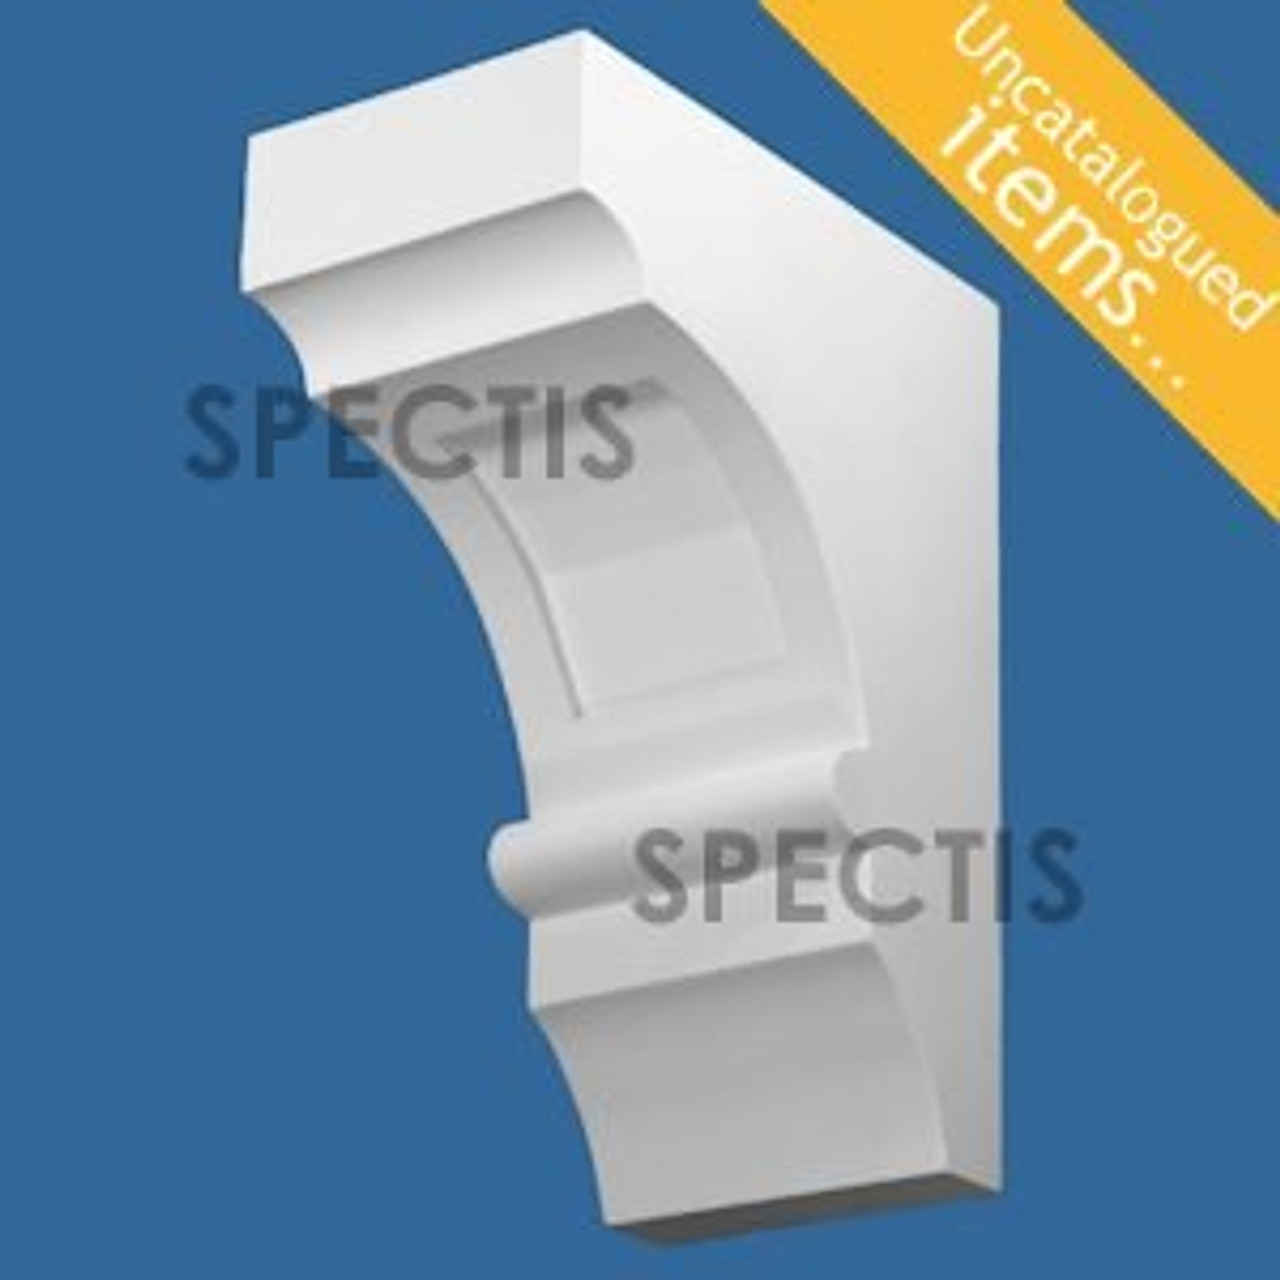 "BL3038 Spectis Eave Block or Bracket 6""W x 14""H x 10.5"" Projection"